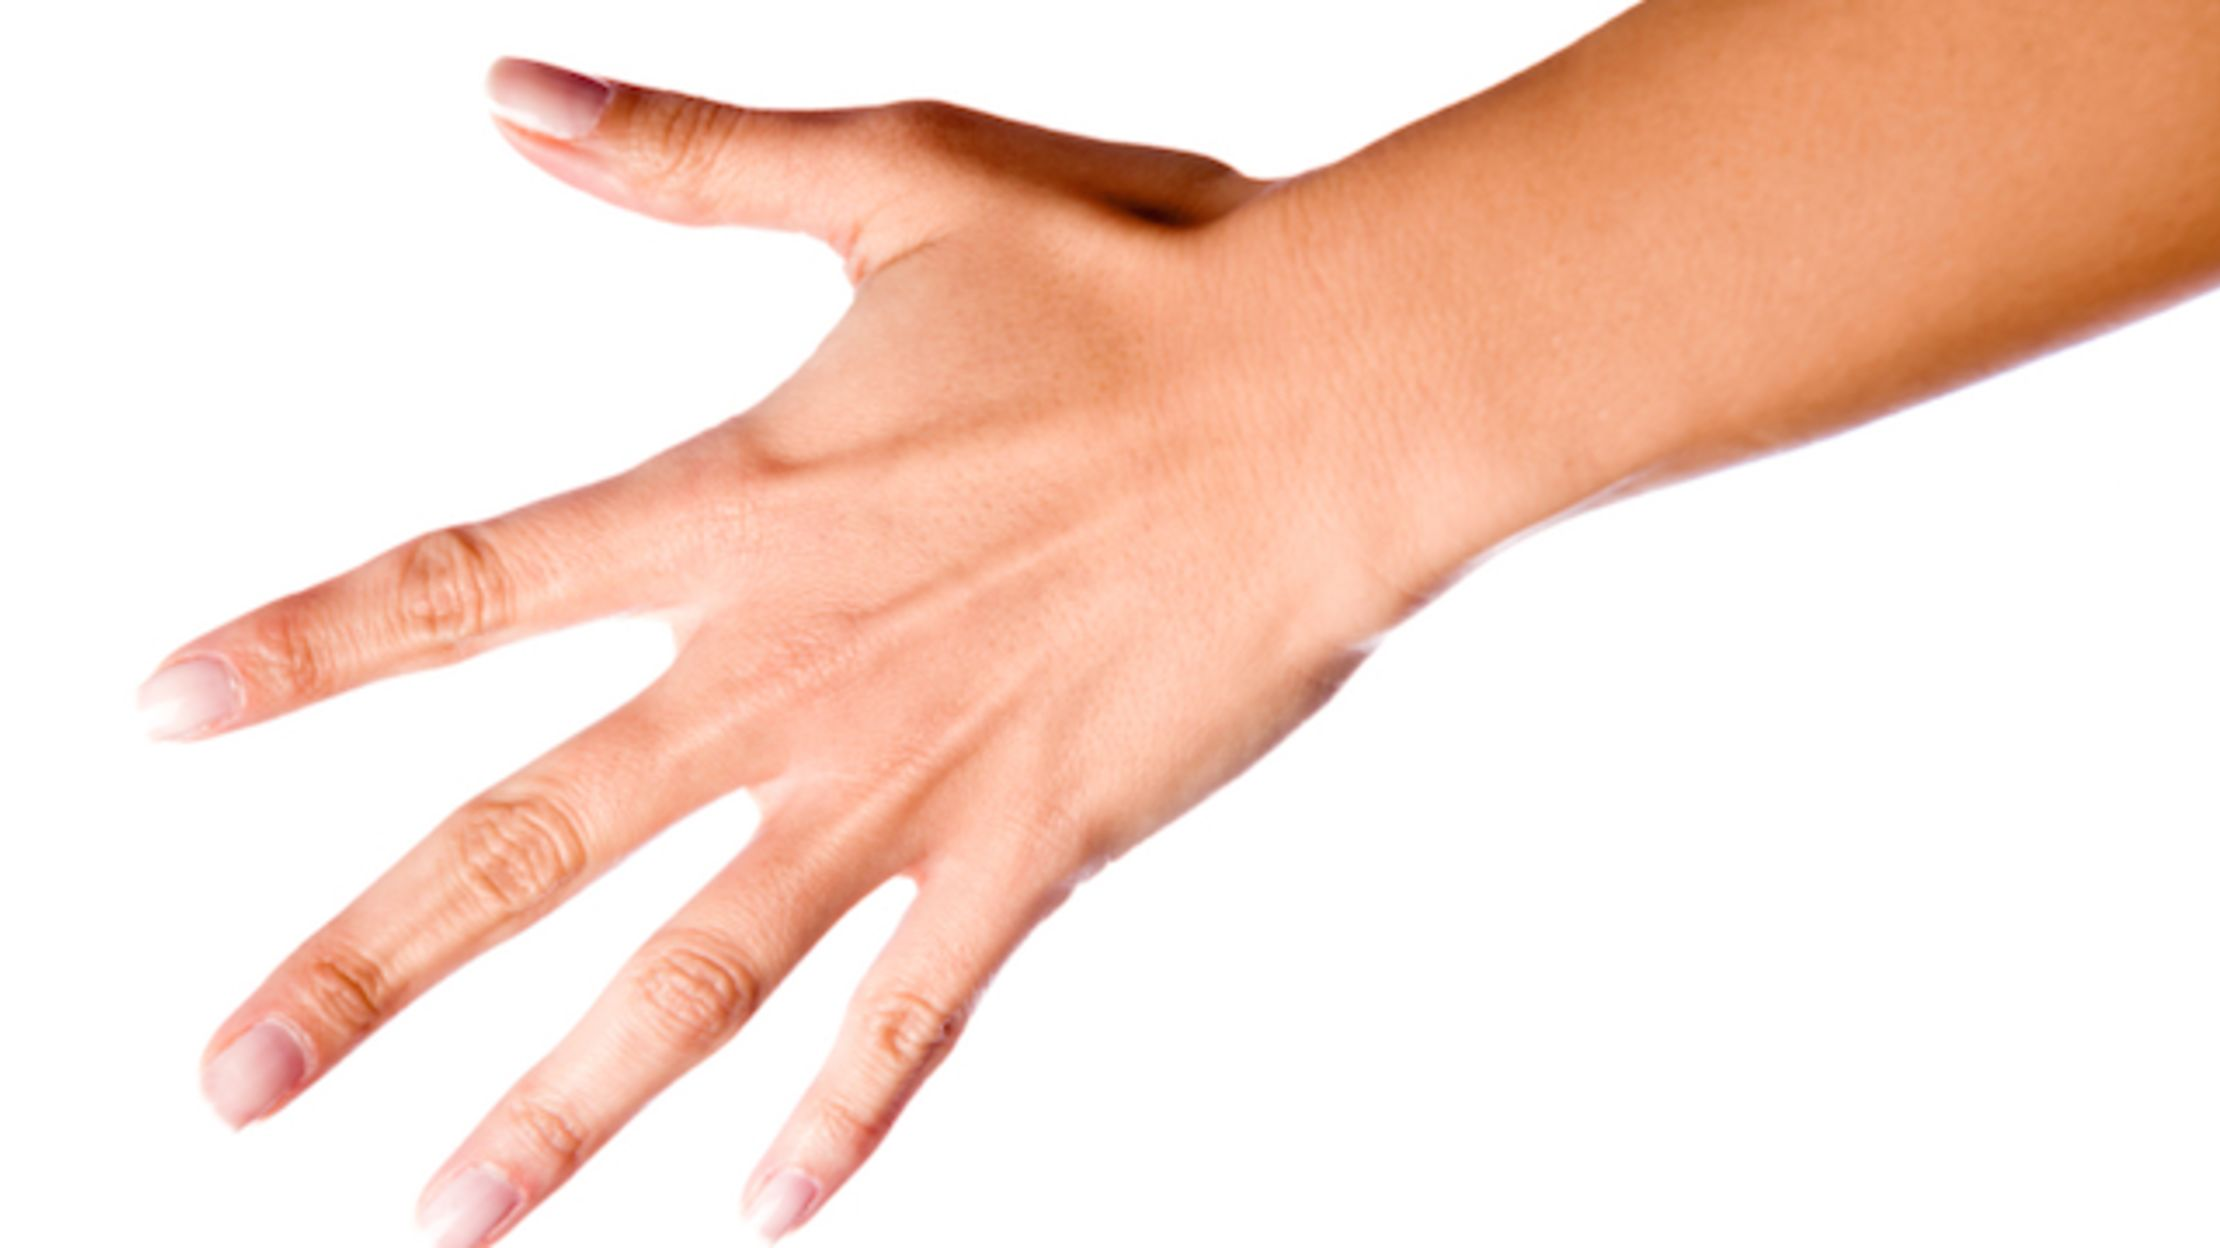 How the 5 Fingers Got Their Names | Mental Floss